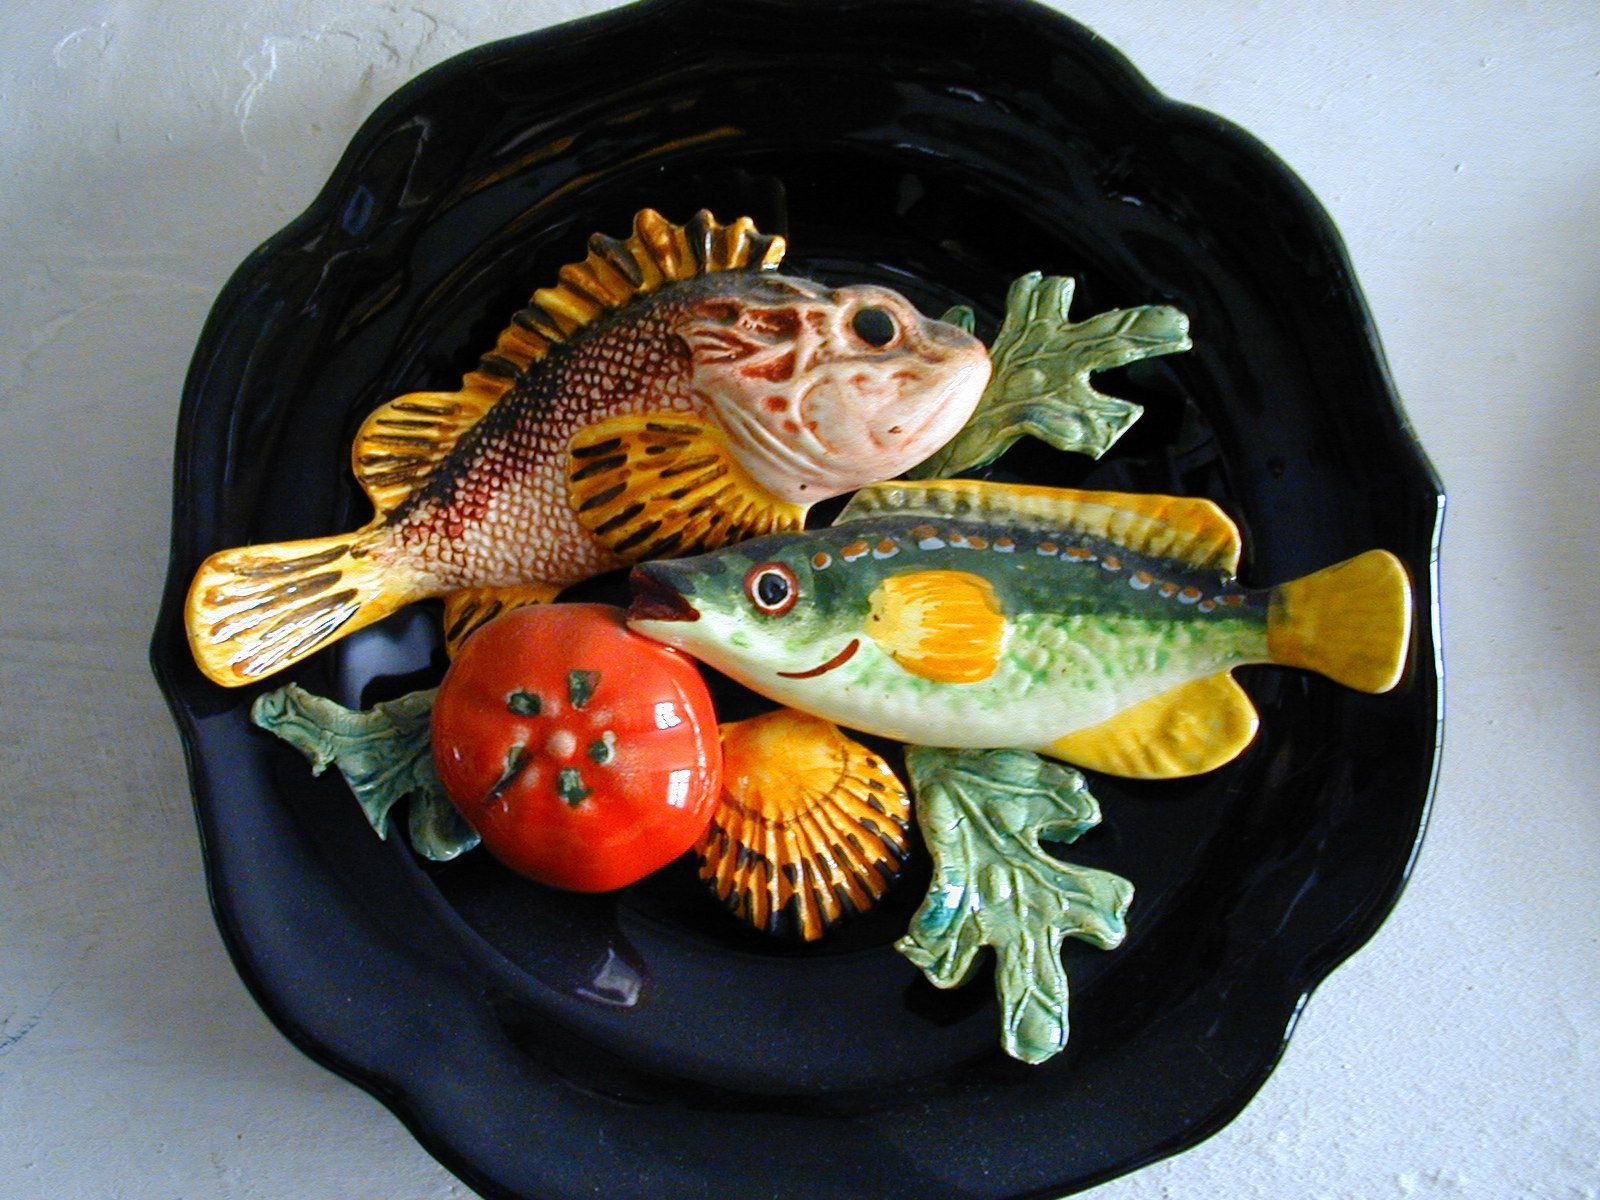 Buy some of the unusual fish pottery if you happen upon one in this lovely region